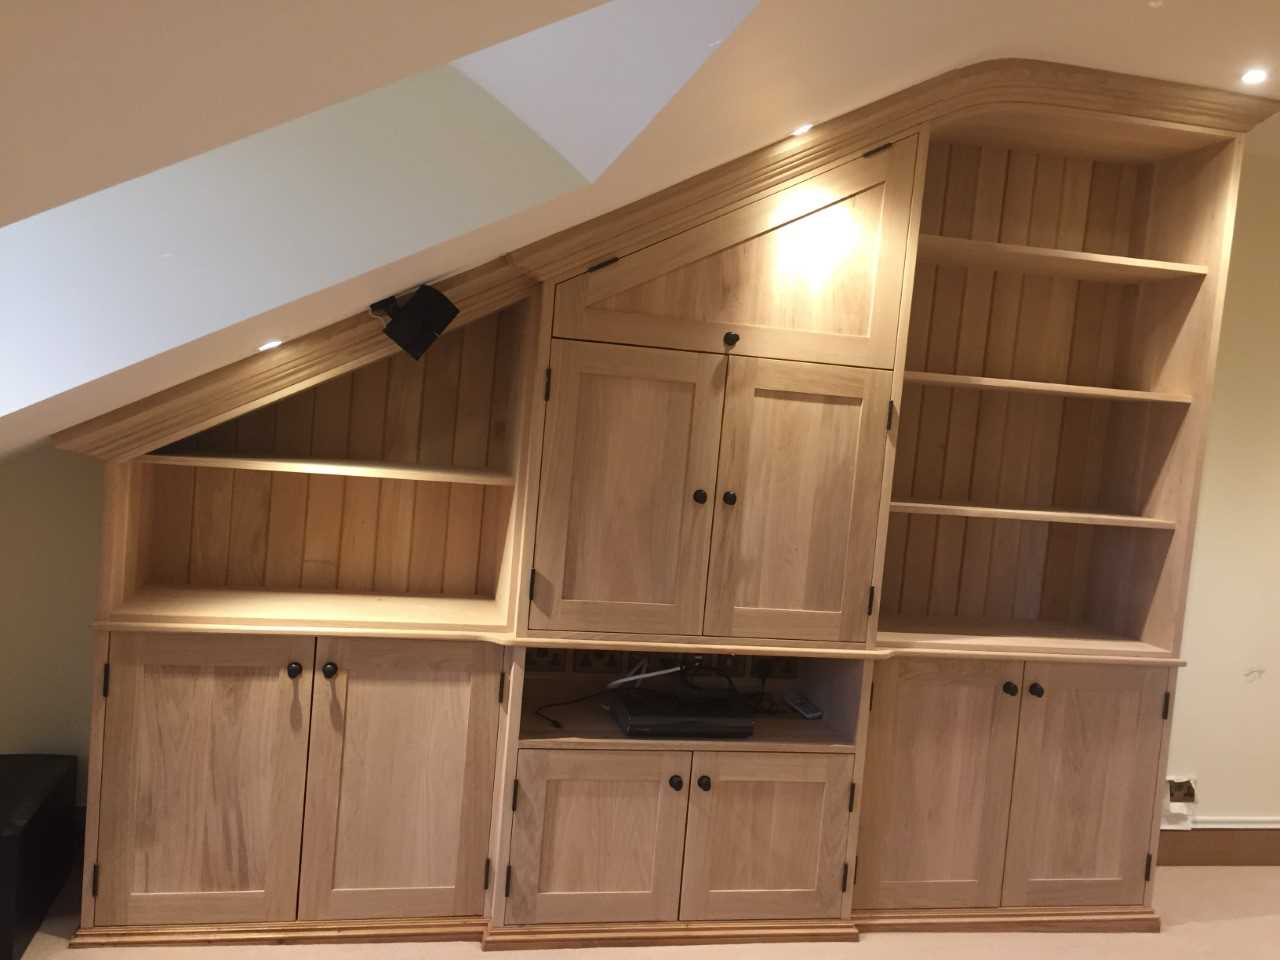 Bespoke Joinery project by the Lakeland Building Group